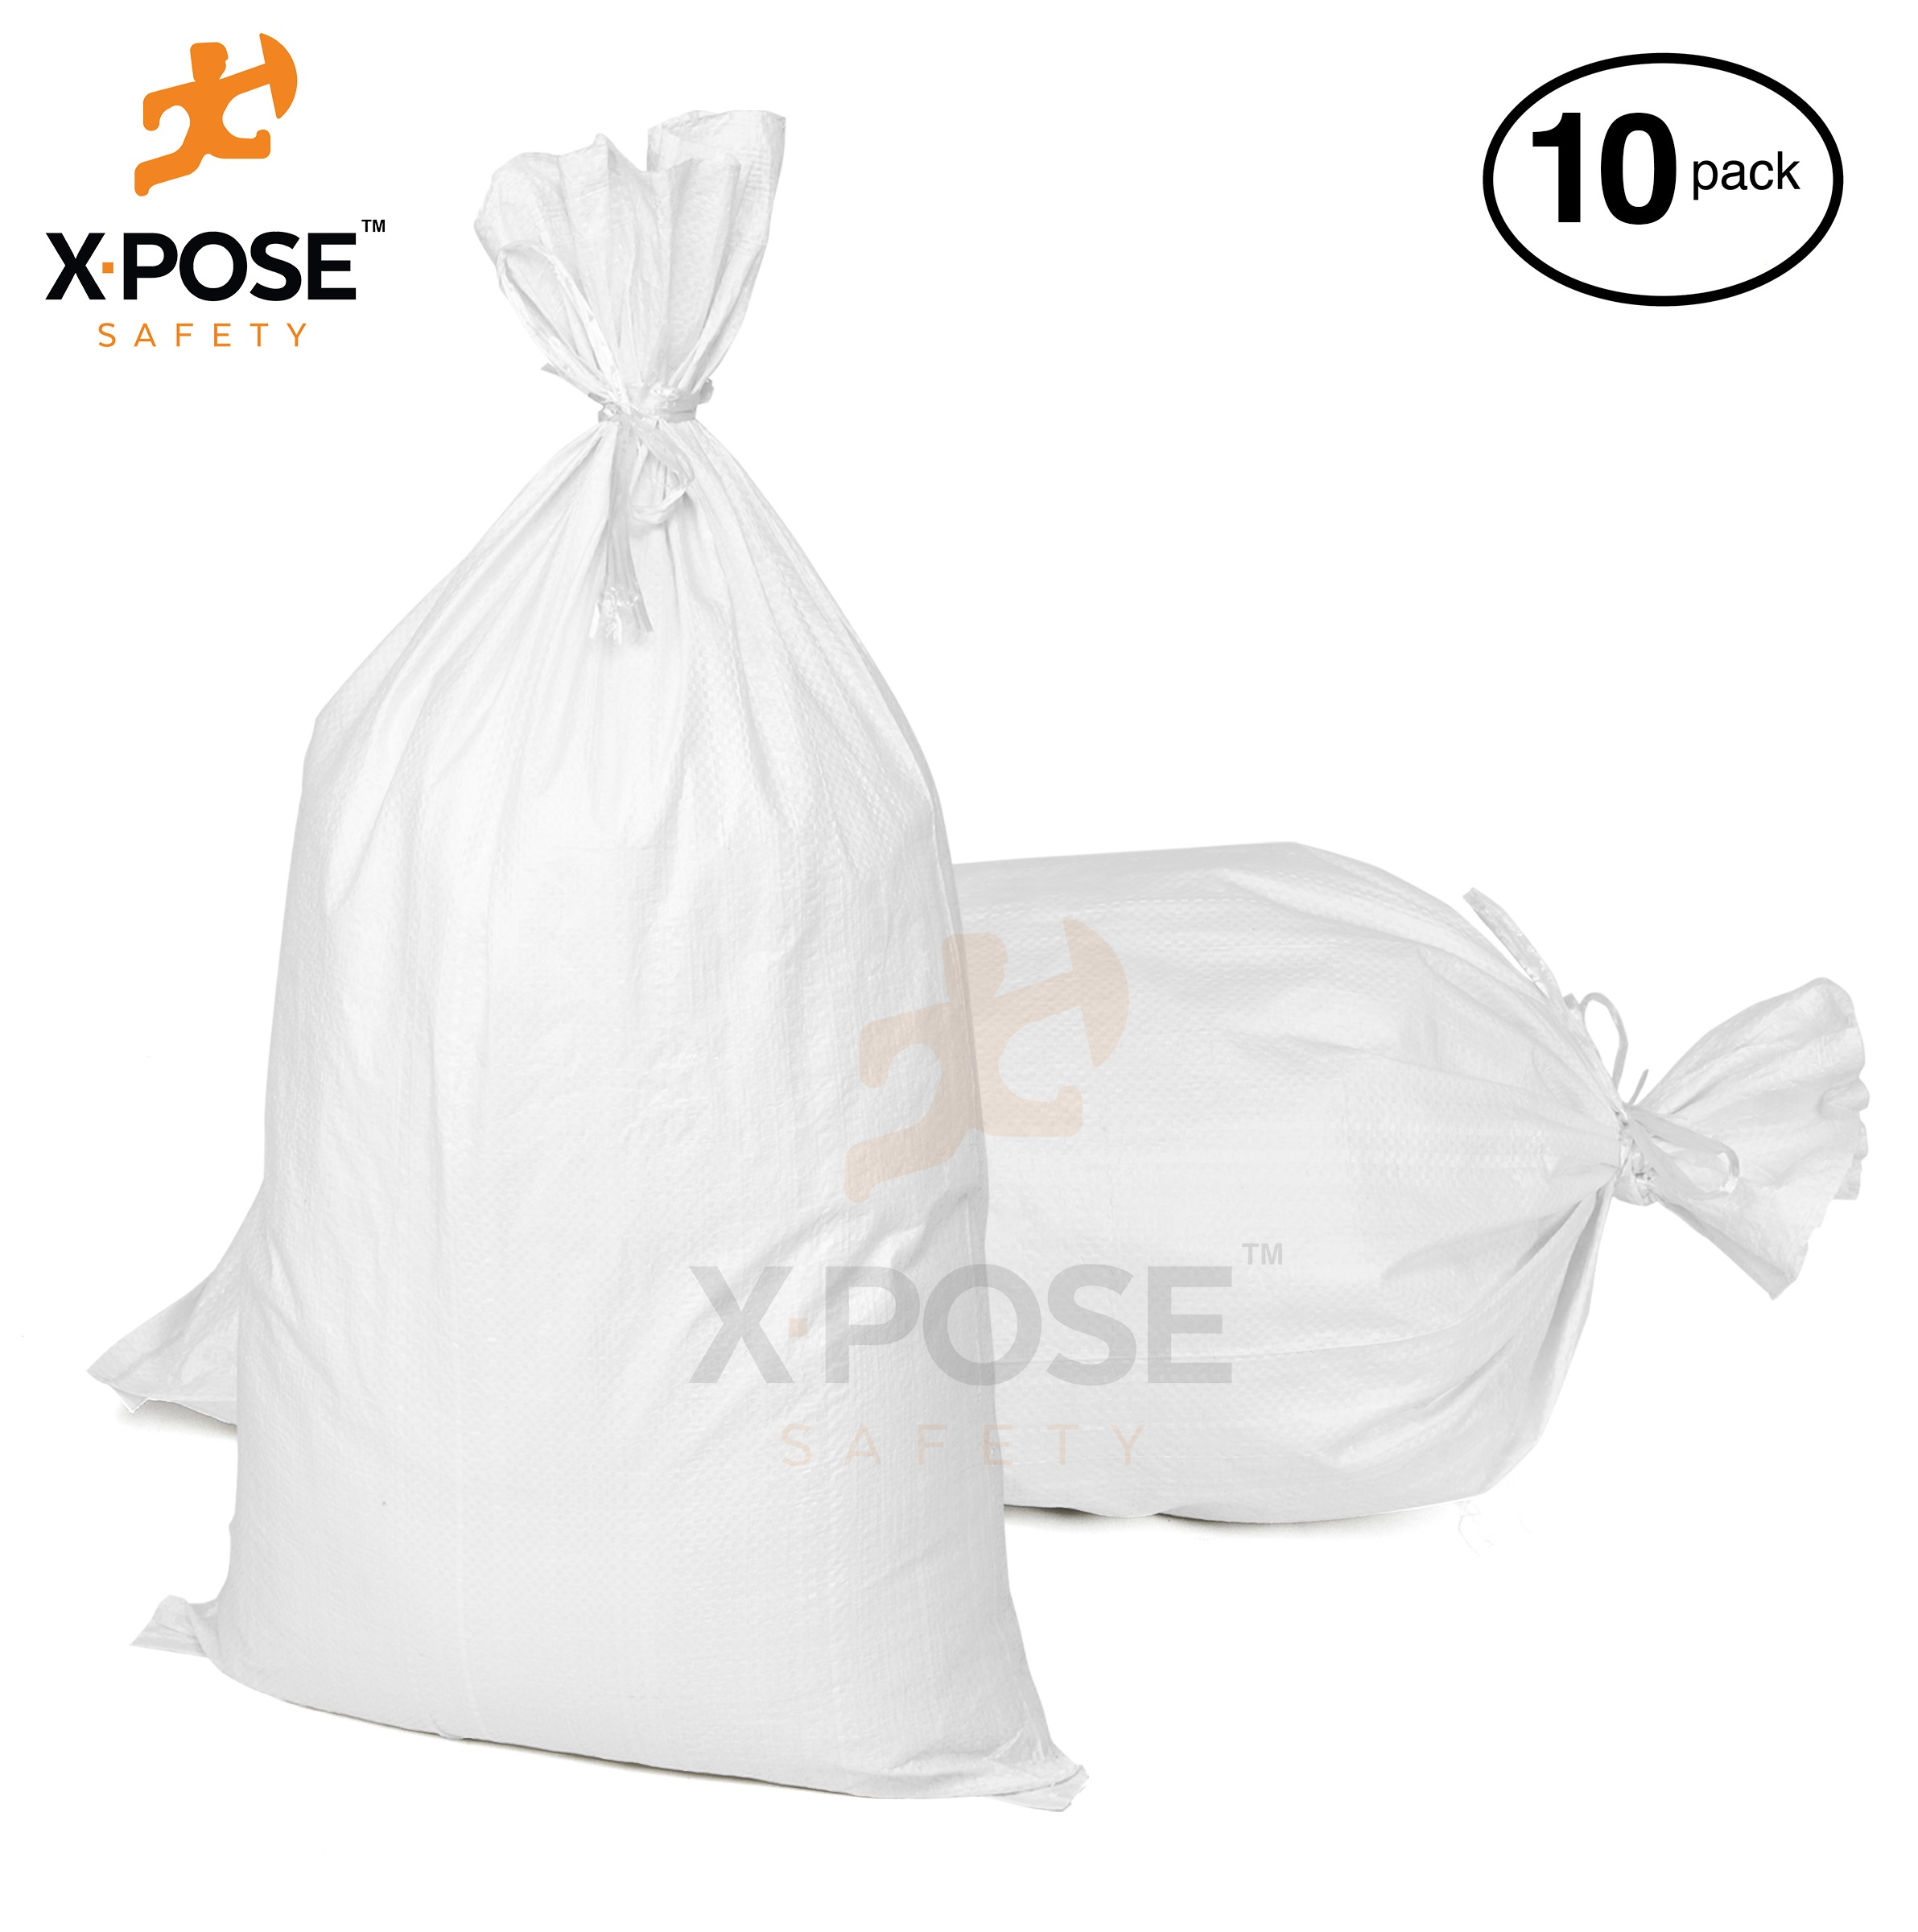 "Xpose Safety 15""x27"" Empty Sandbags, 10 Pack with Ties Heavy Duty Woven Polypropylene, UV Sun Protection, Dust, Water and Oil Resistant - Home and Industrial - Floods, Photography and More  WSB-1527-10"